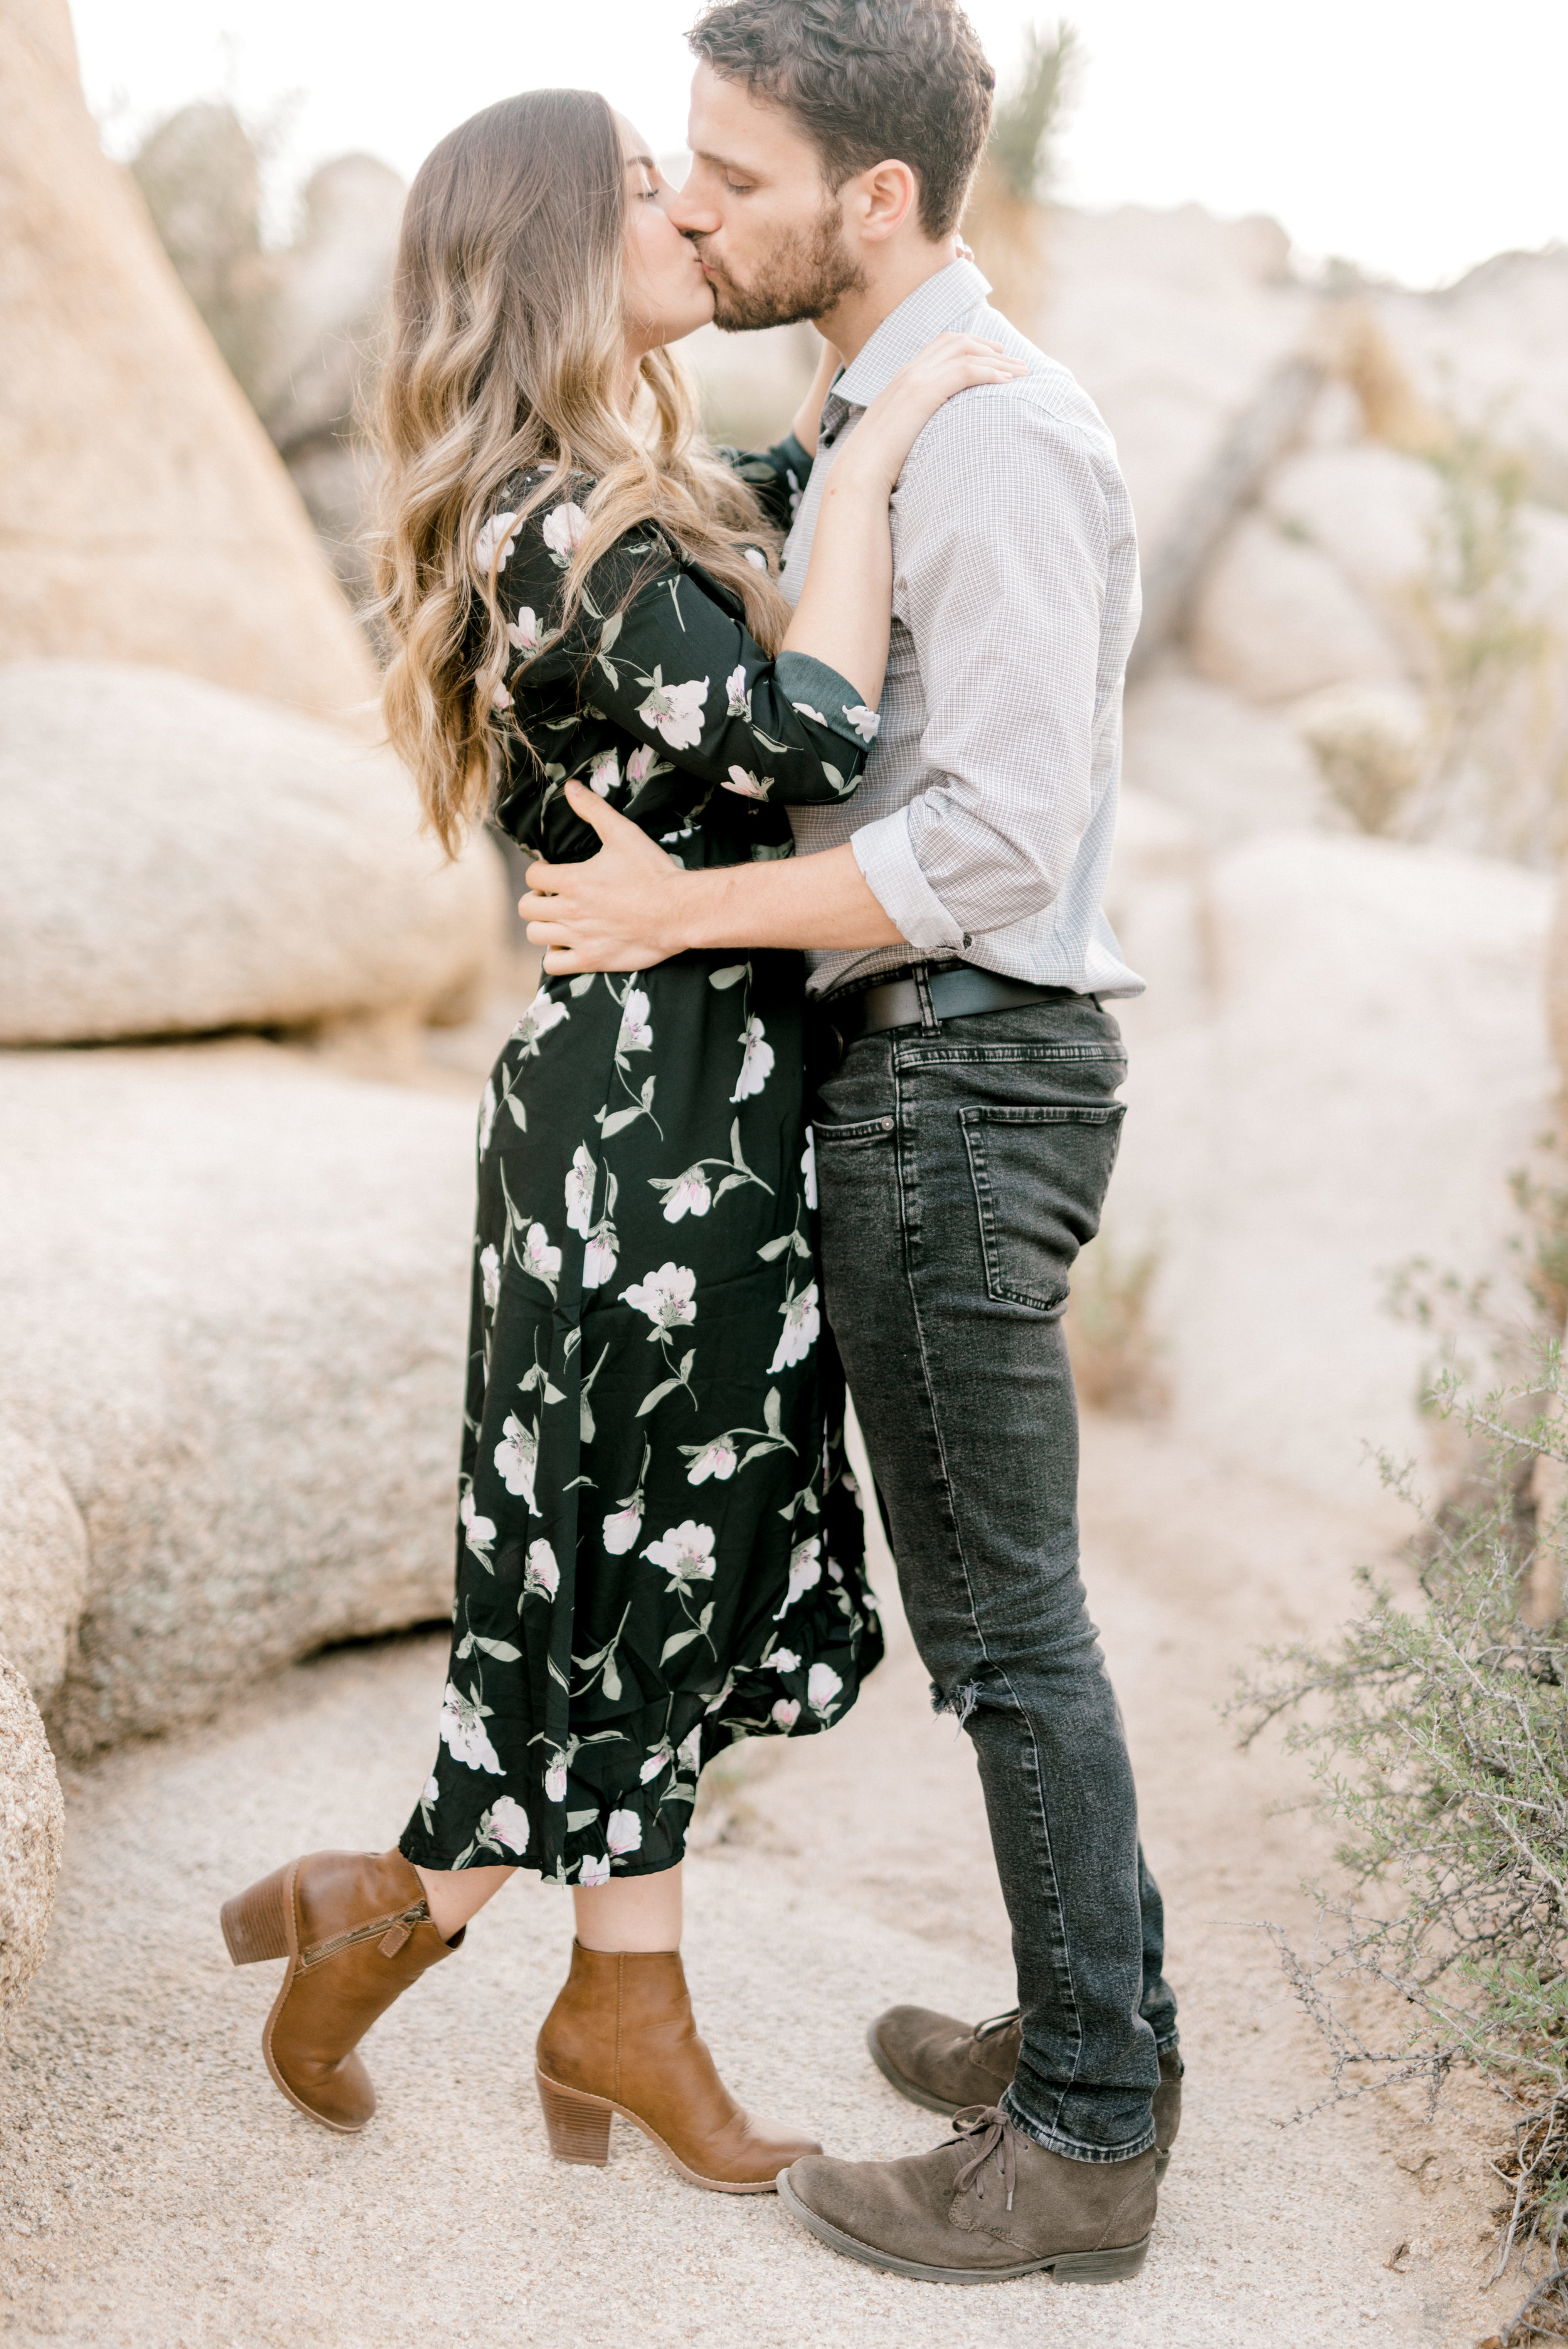 Smooches for this stylish boho couple at their free-spirited desert engagement session in Joshue Tree